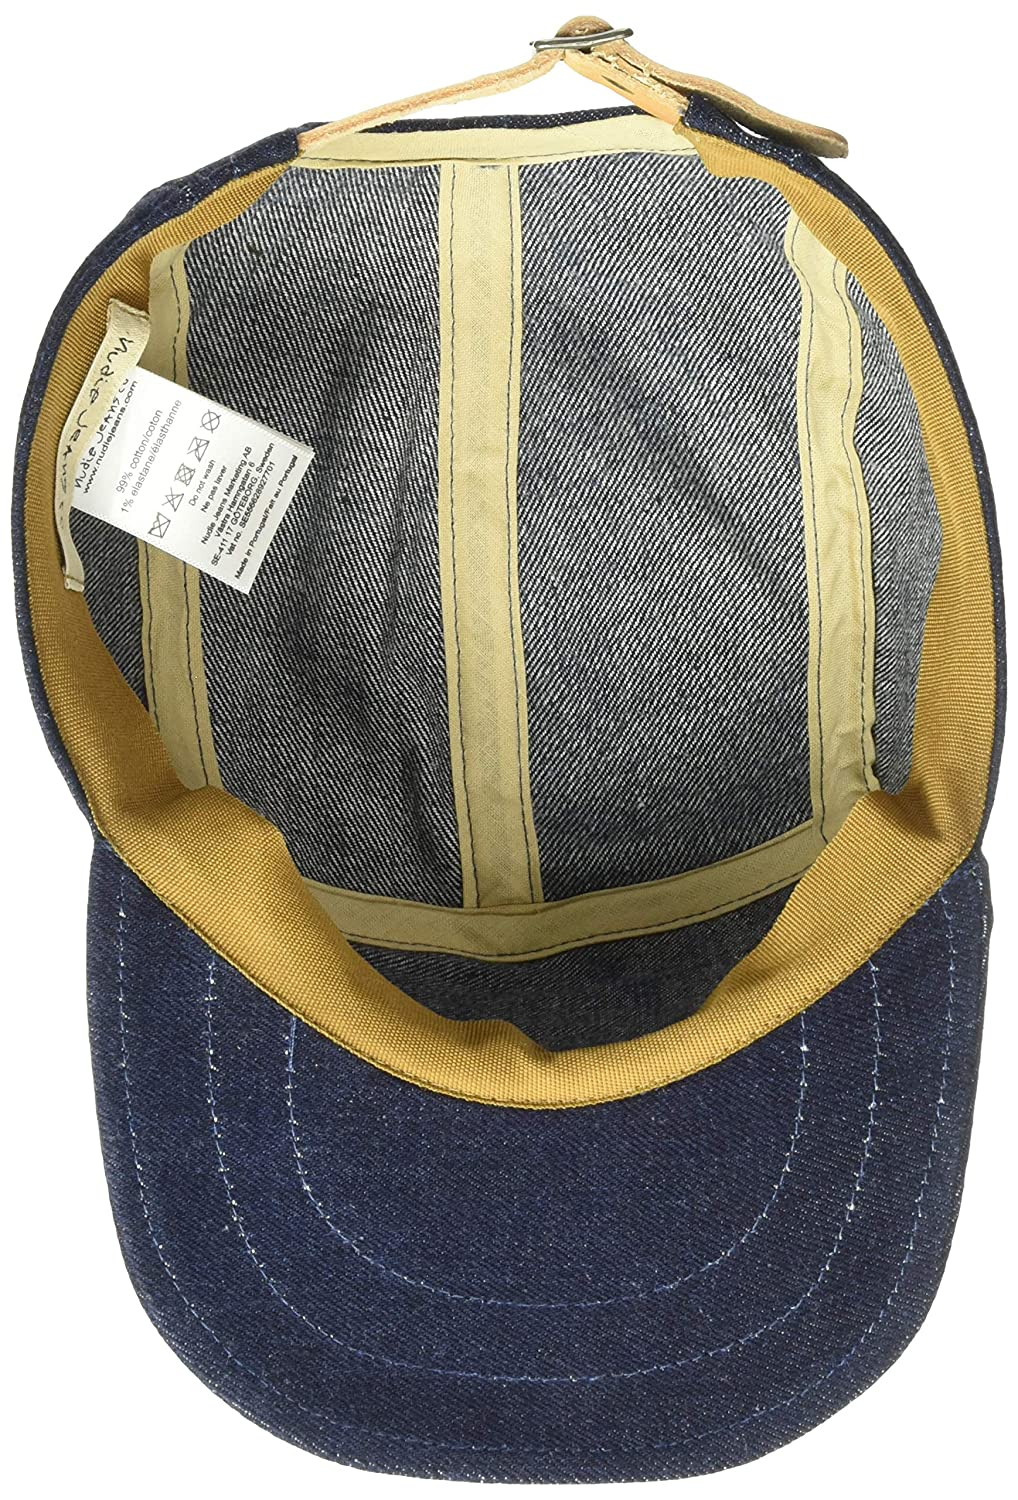 8b84d0f16 Nudie Jeans Men's Larsson Recycled Cap, Denim, 998: Amazon.com.au ...